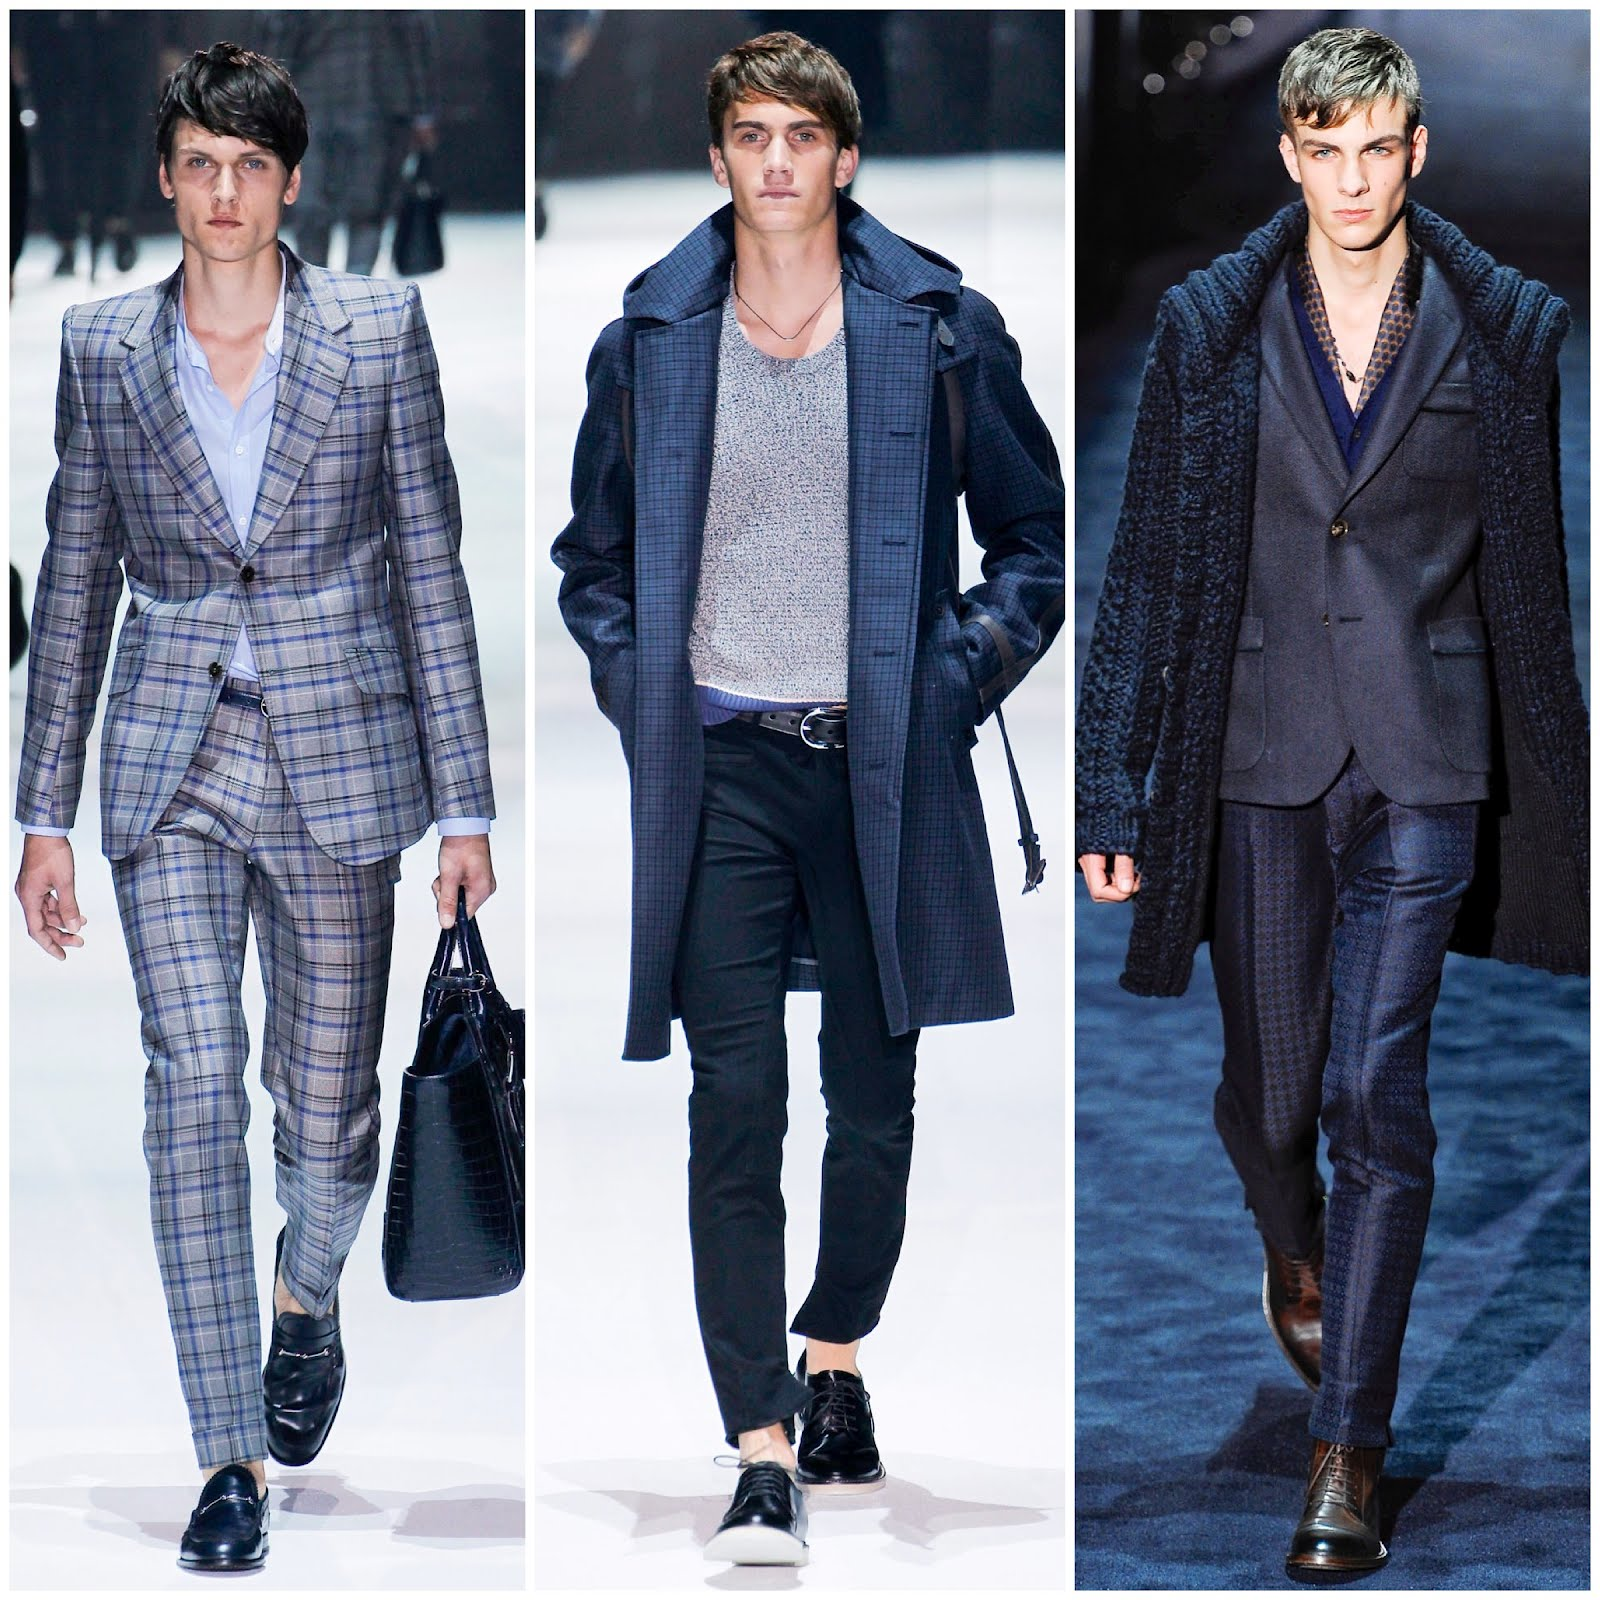 00o00 london menswear blog fashion style andrew garfield spiderman berlin germany gucci SS2012 FW2012 Spring Summer Fall Winter